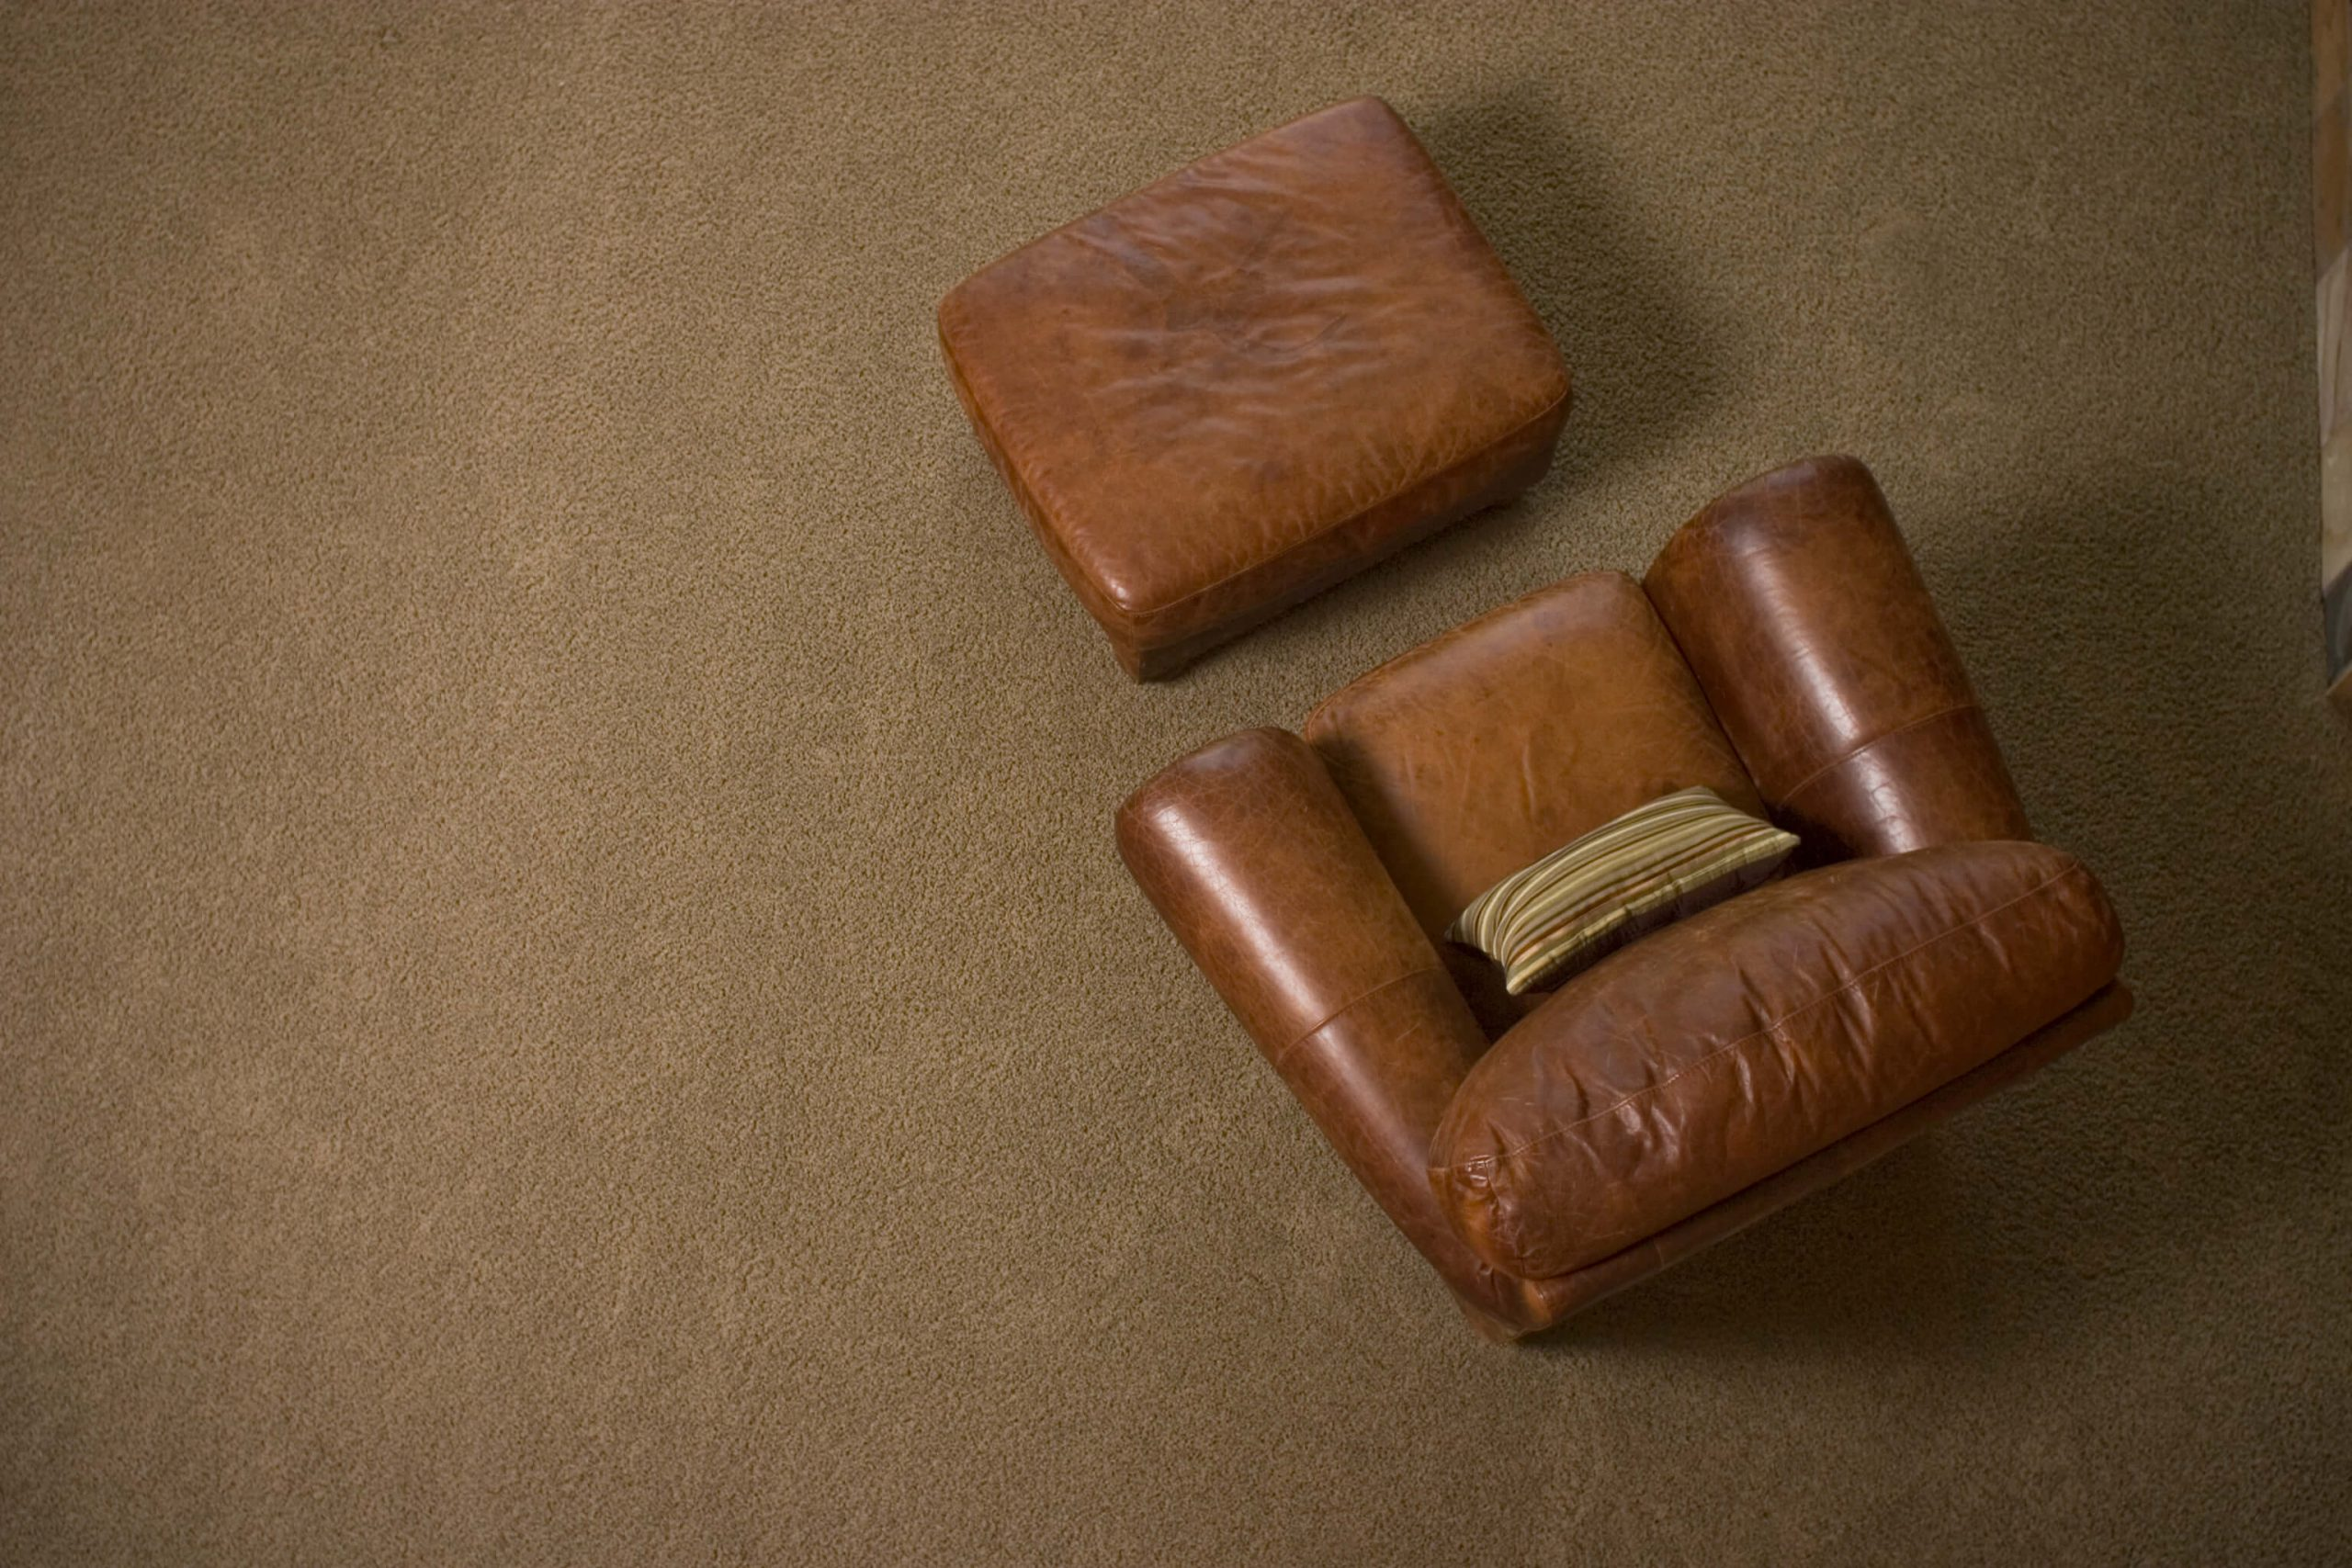 armchair after a leather furniture cleaning in atlanta ga